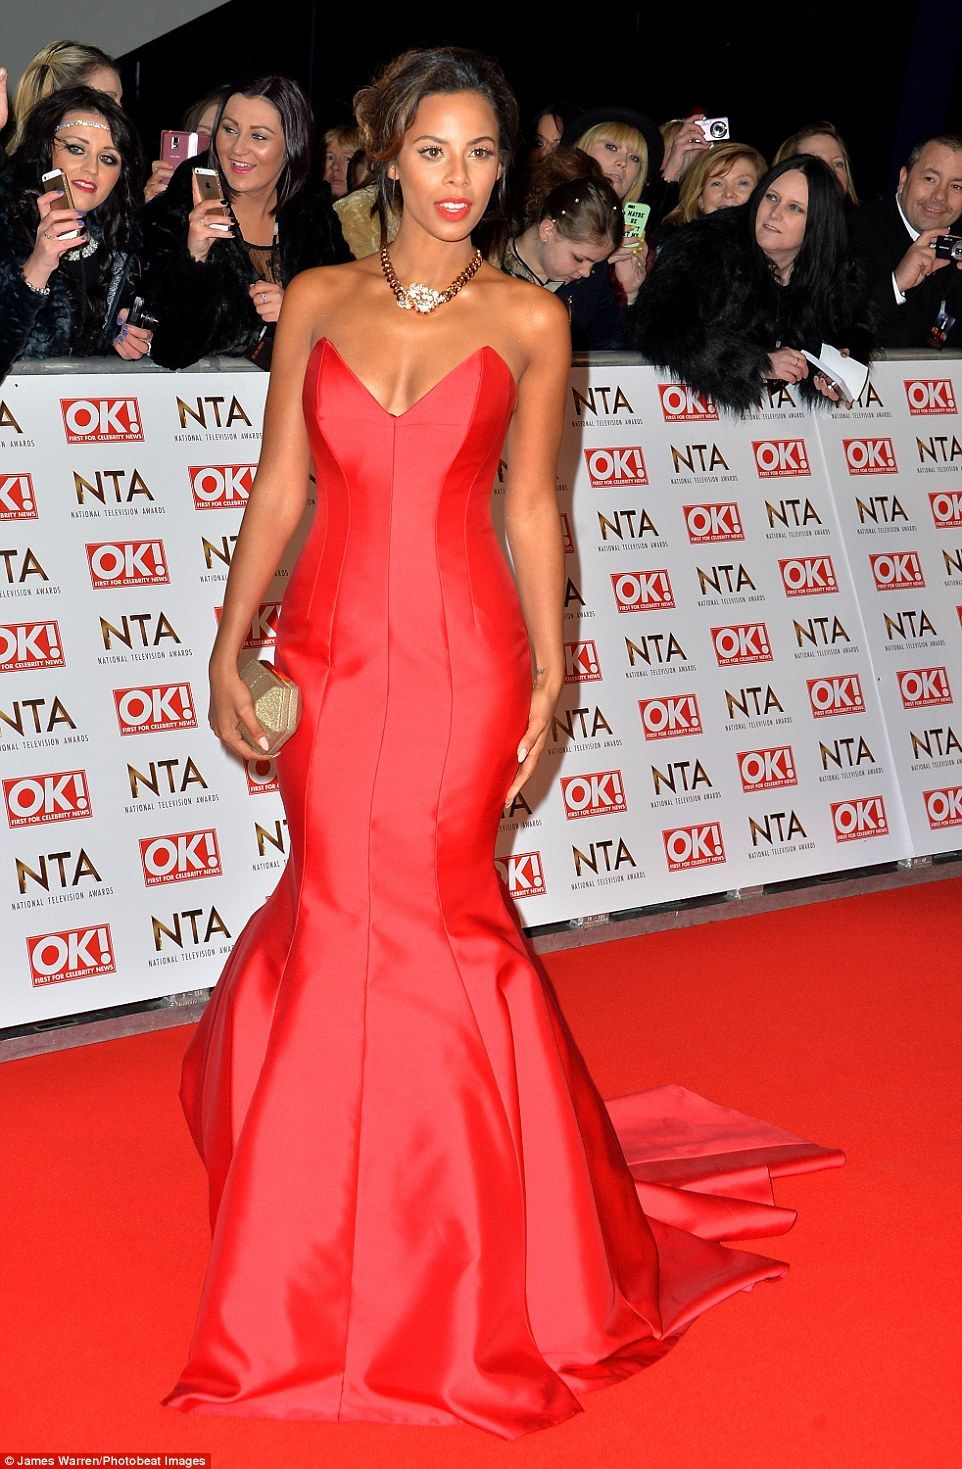 Red alert: The mother-of-one looked sensational in the form-fitting dress which showcased ...